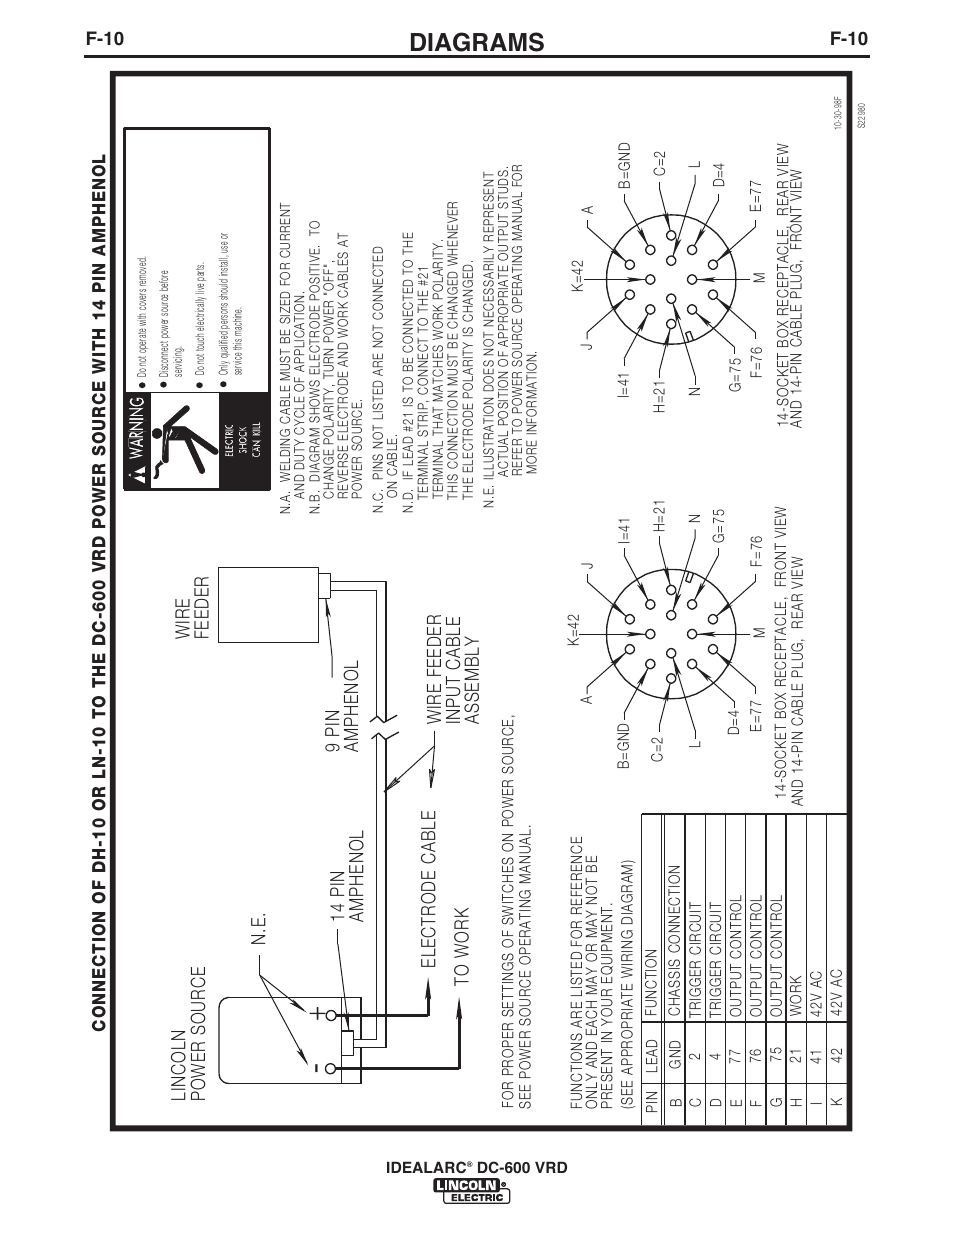 Idealarc Dc 600 Wiring Diagram : 30 Wiring Diagram Images